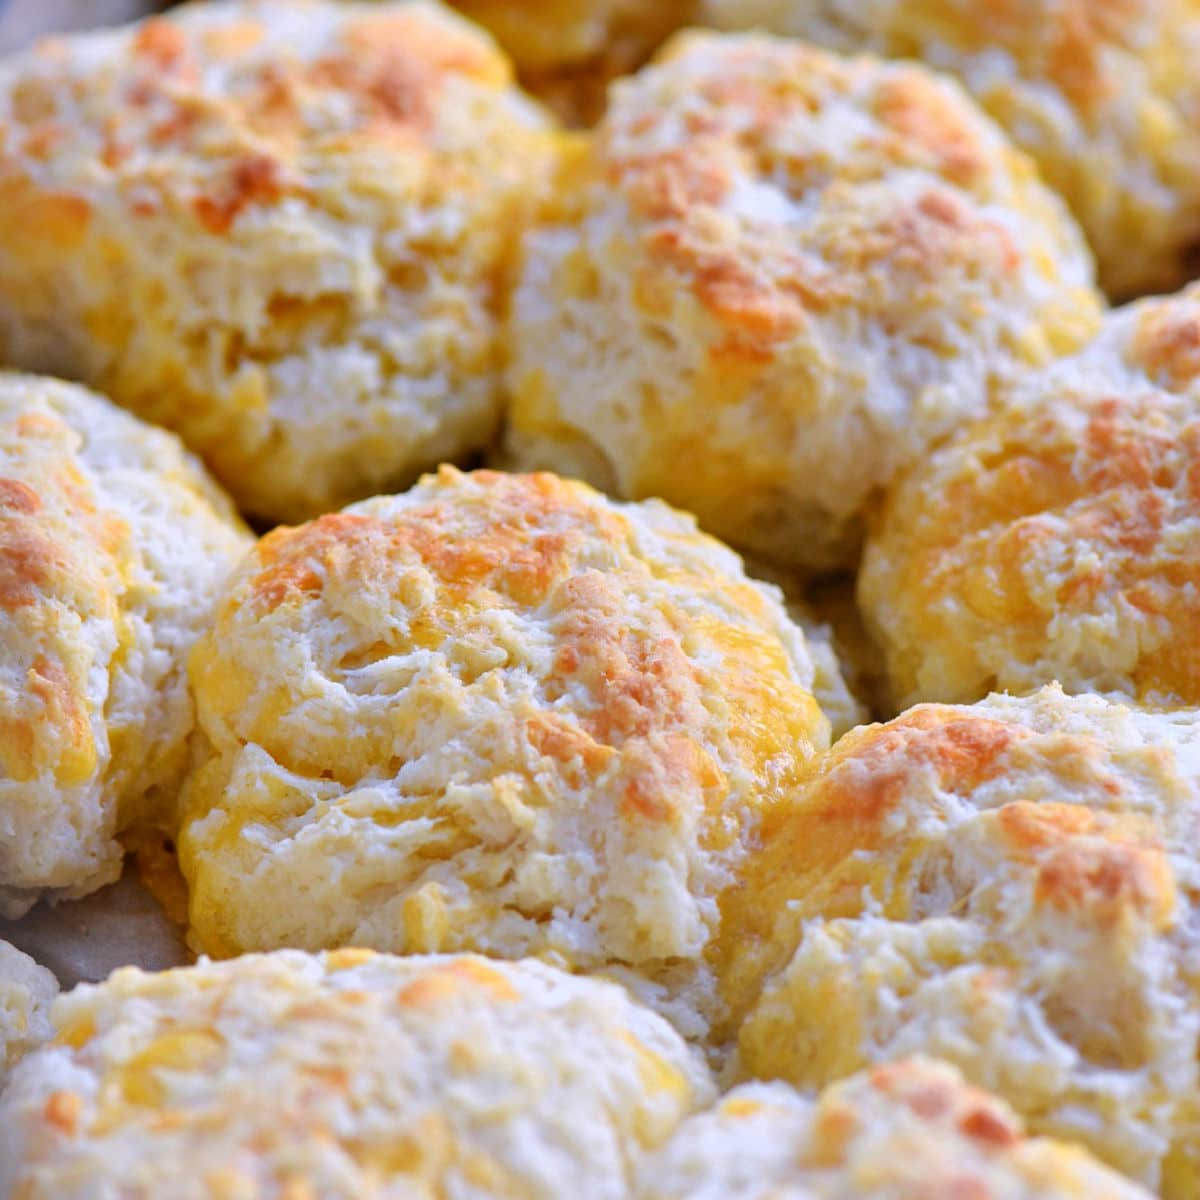 baked cheddar bay biscuits ready for butter topping to be brushed on.